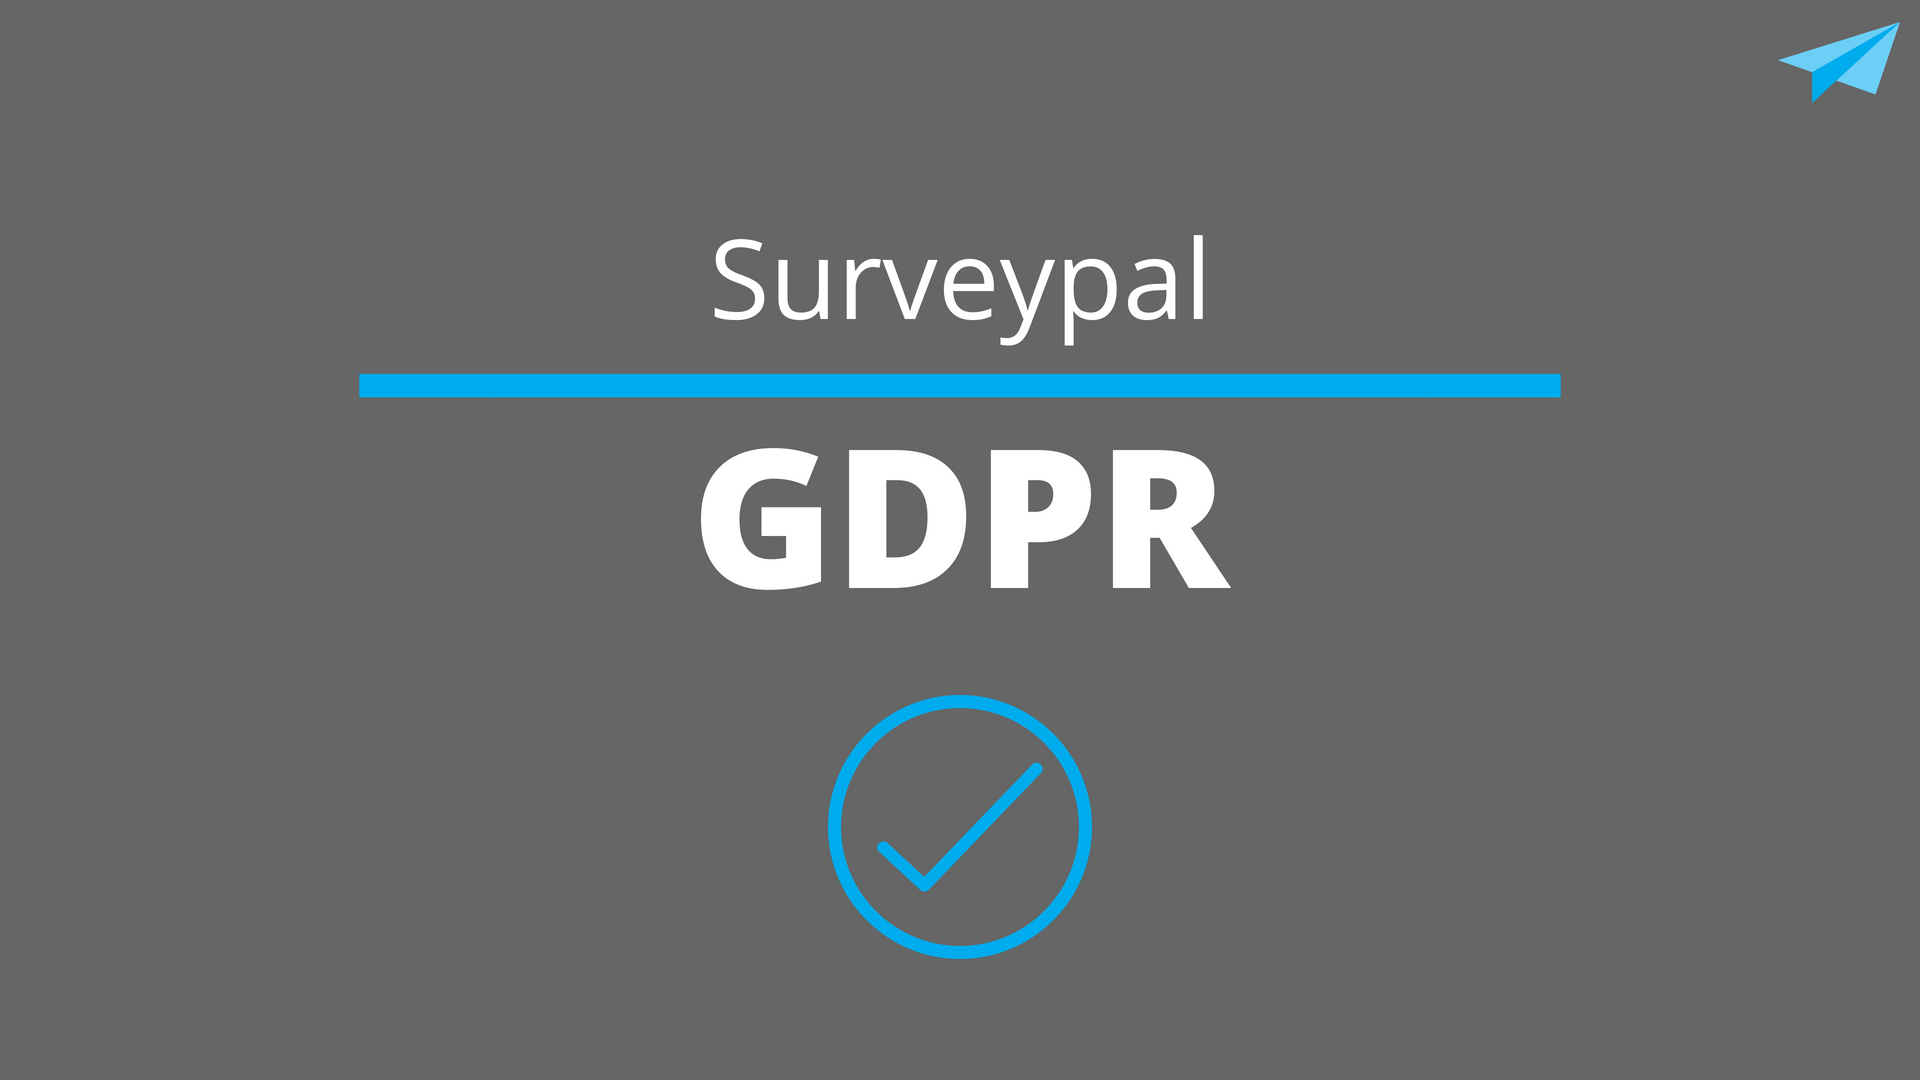 Surveypal GDPR Compliant